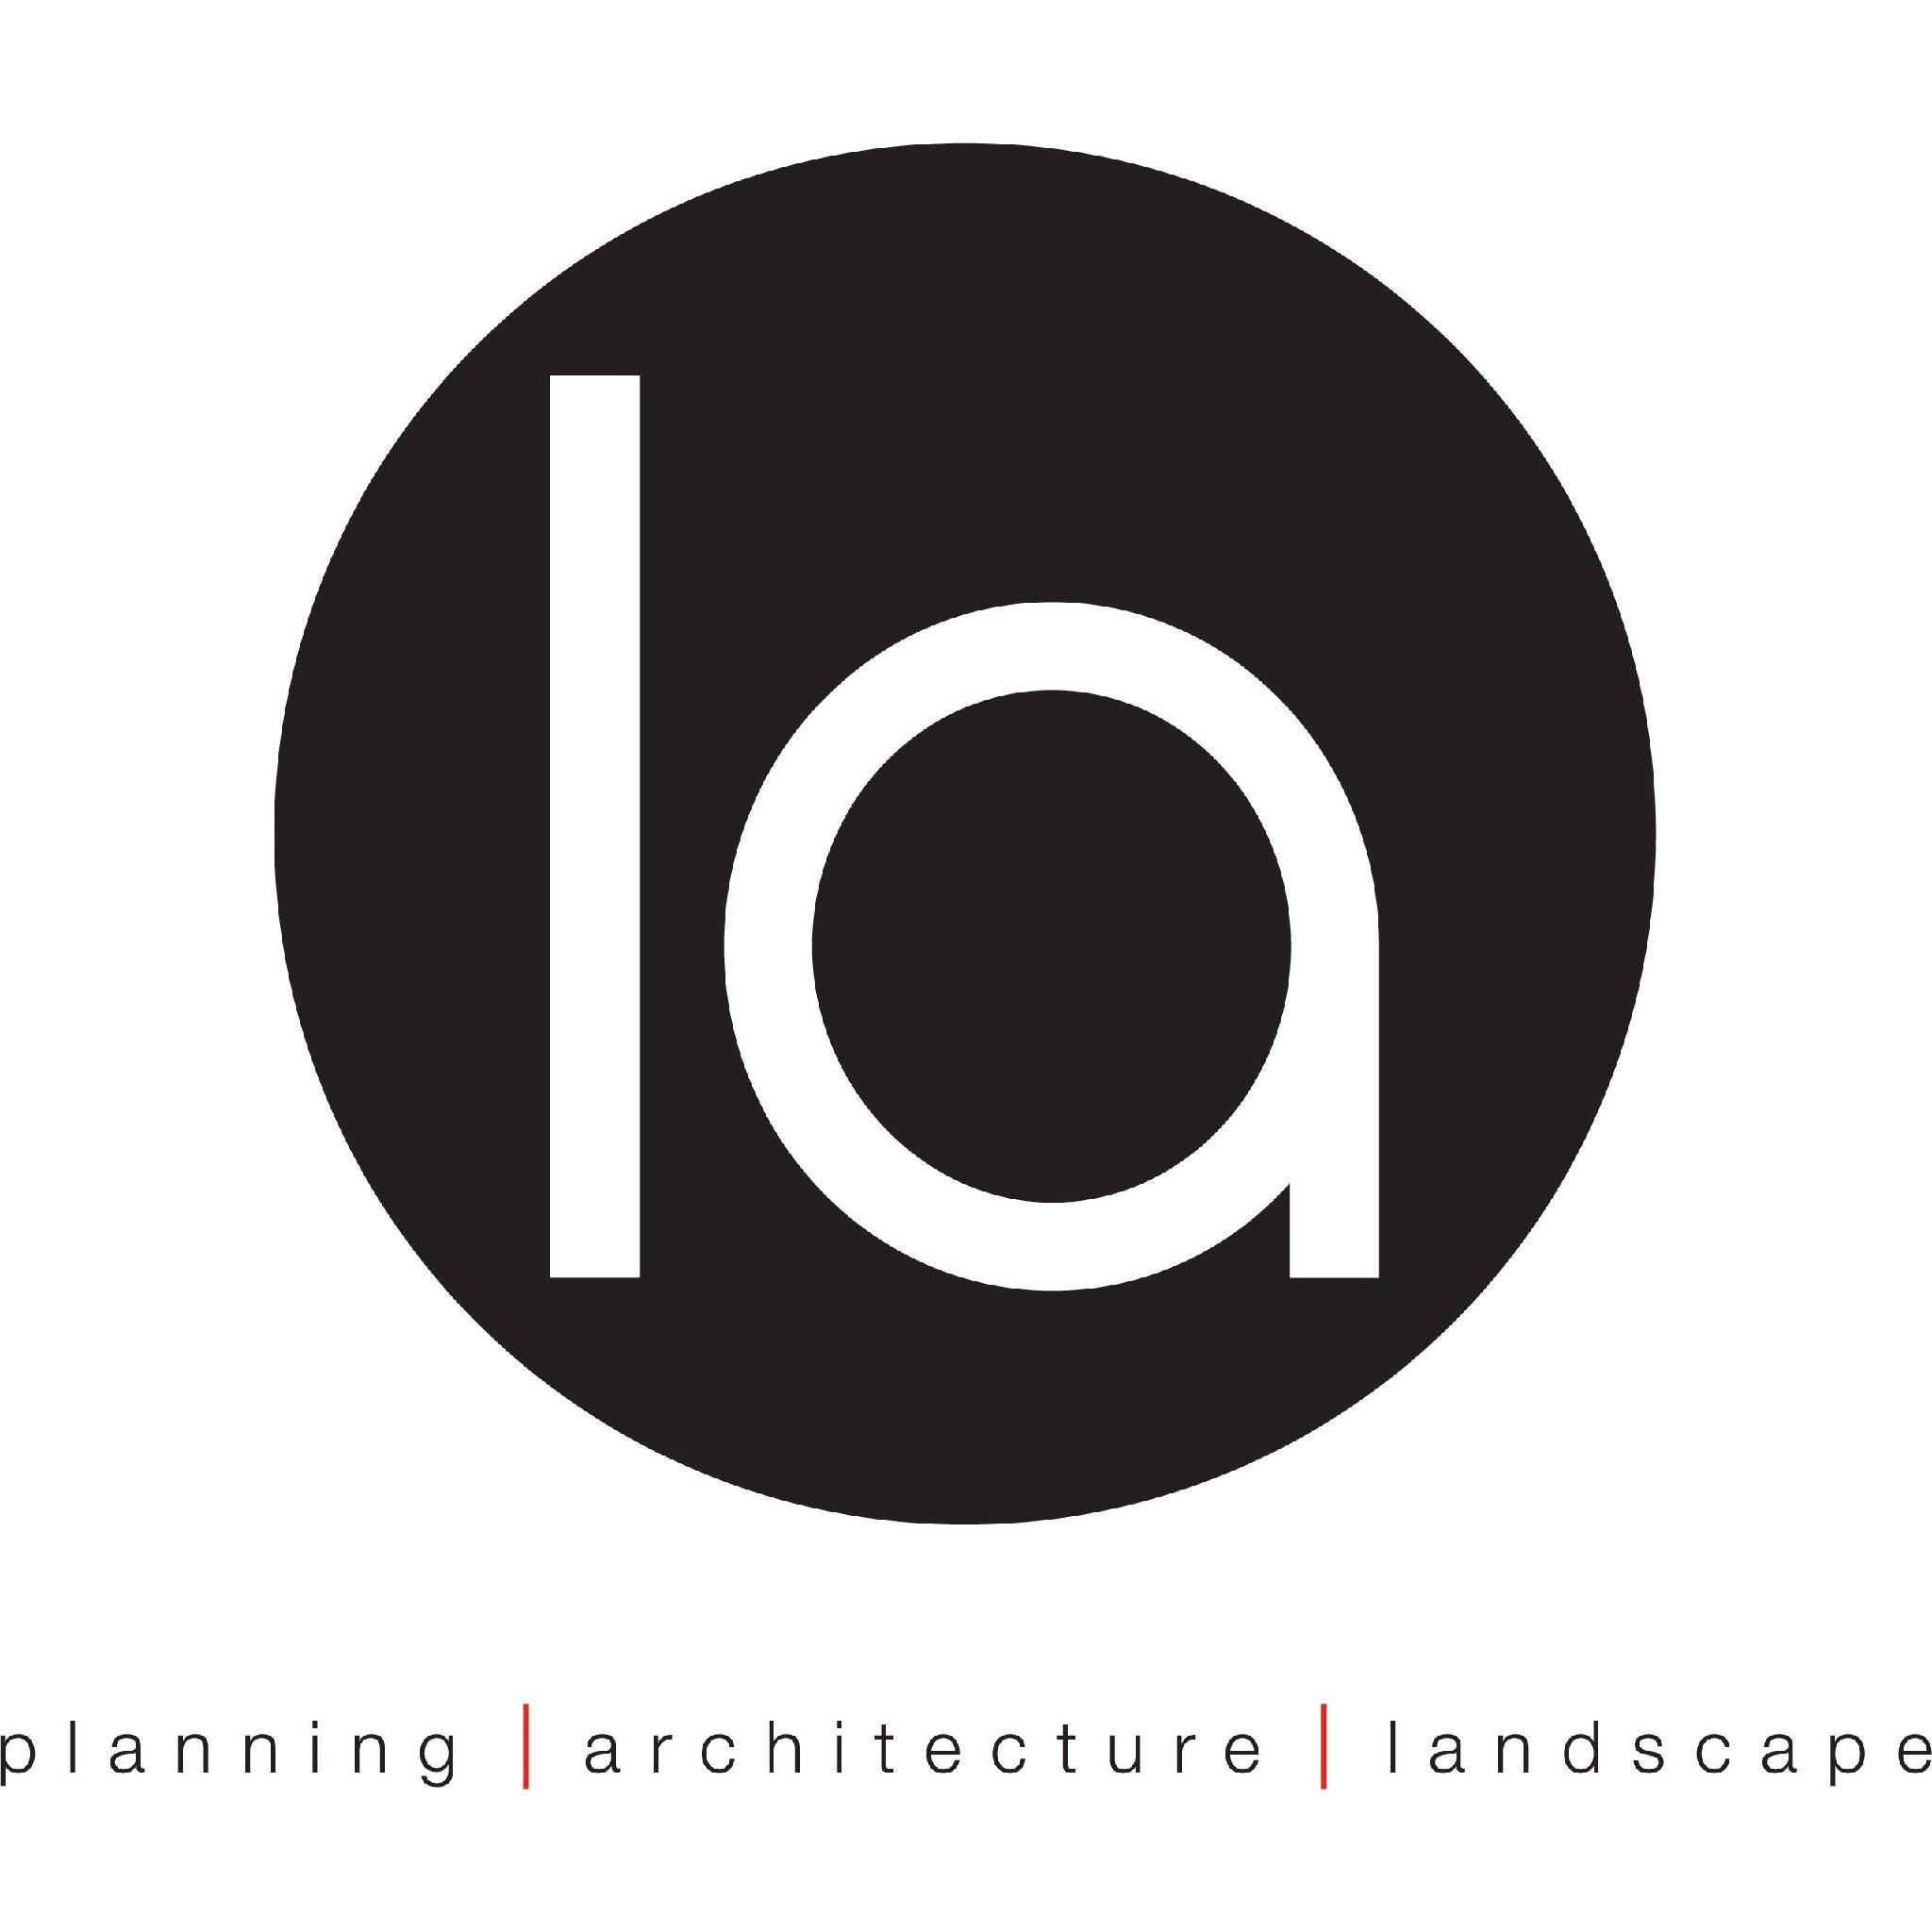 Laurence associates planning architecture landscape - Location de vacances cornwall laurence associates ...